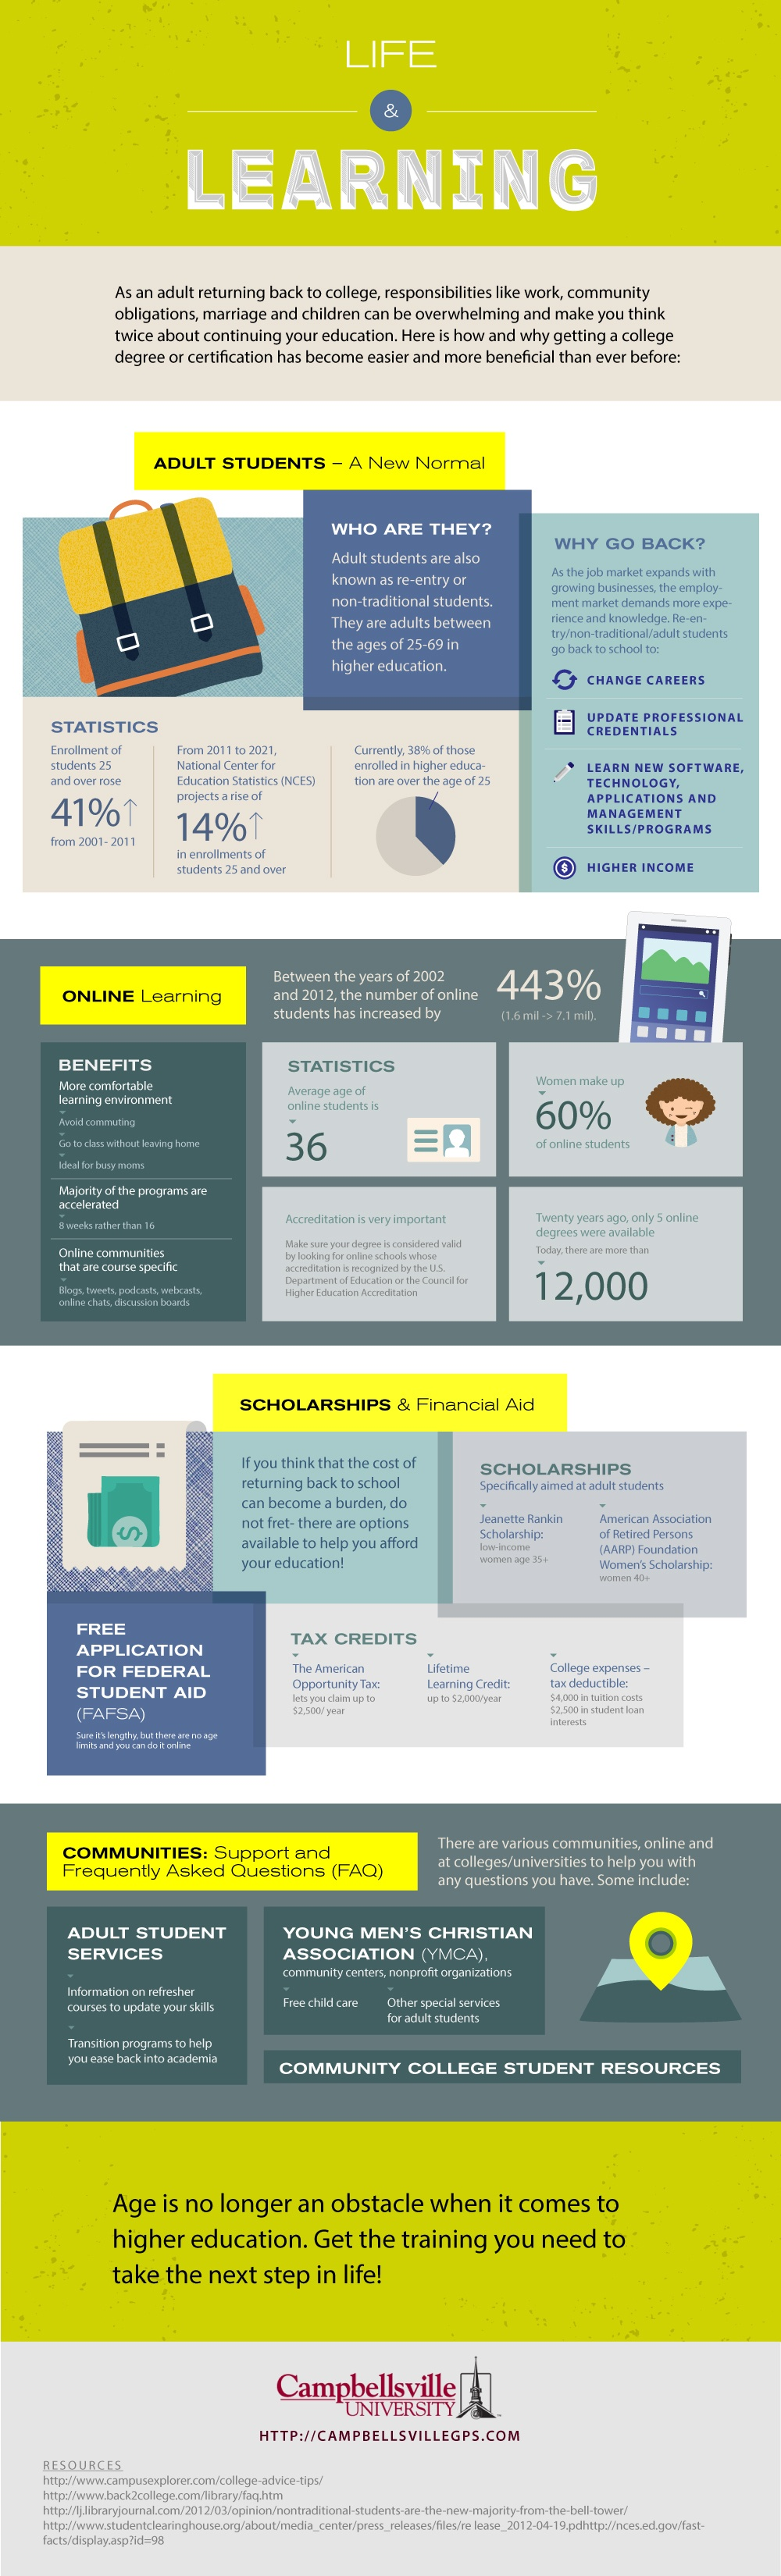 Adult Life and Learning Infographic